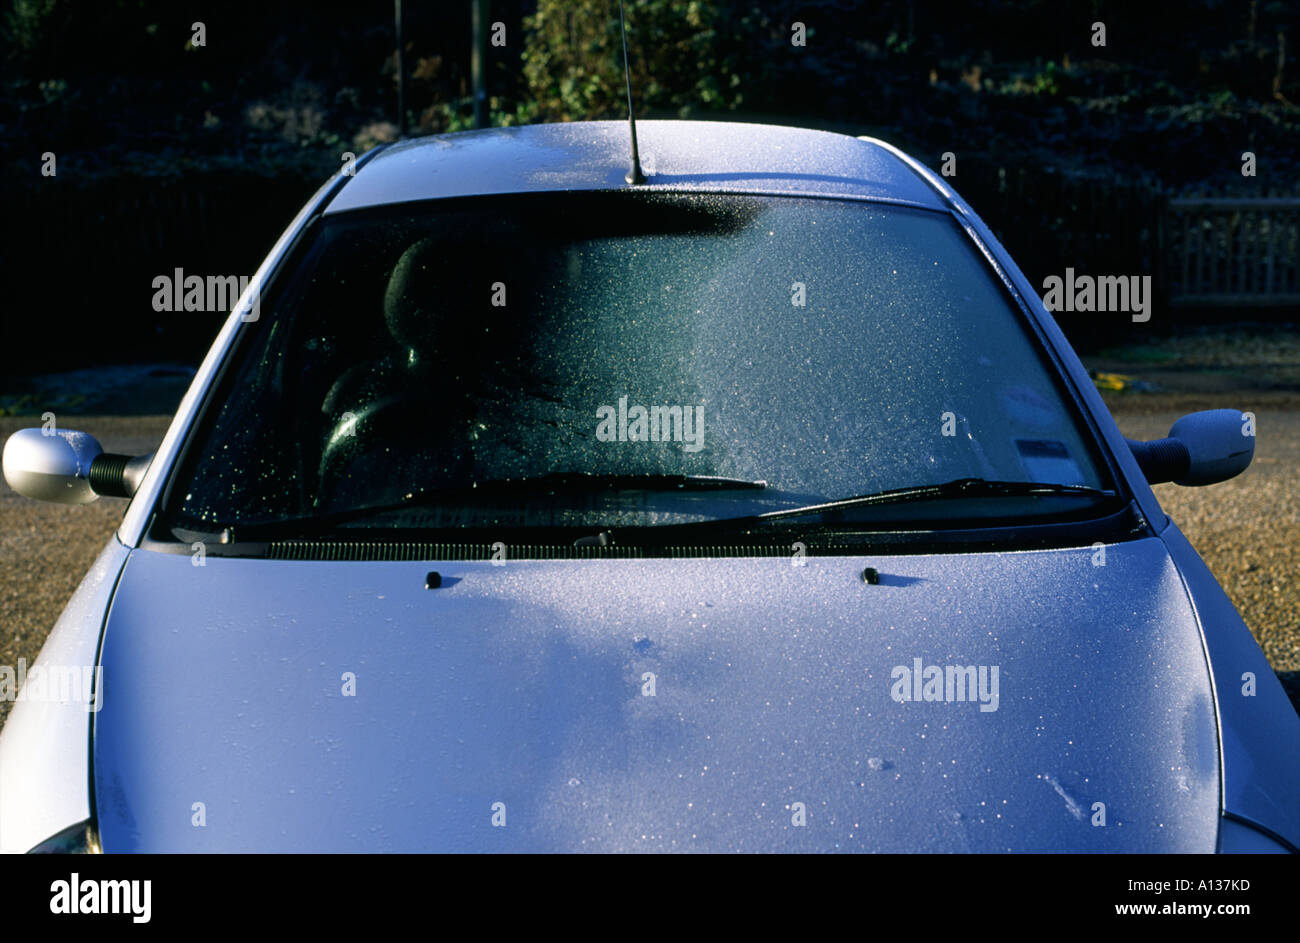 Ford Ka Windscreen Half Covered In November Frost Stock Image